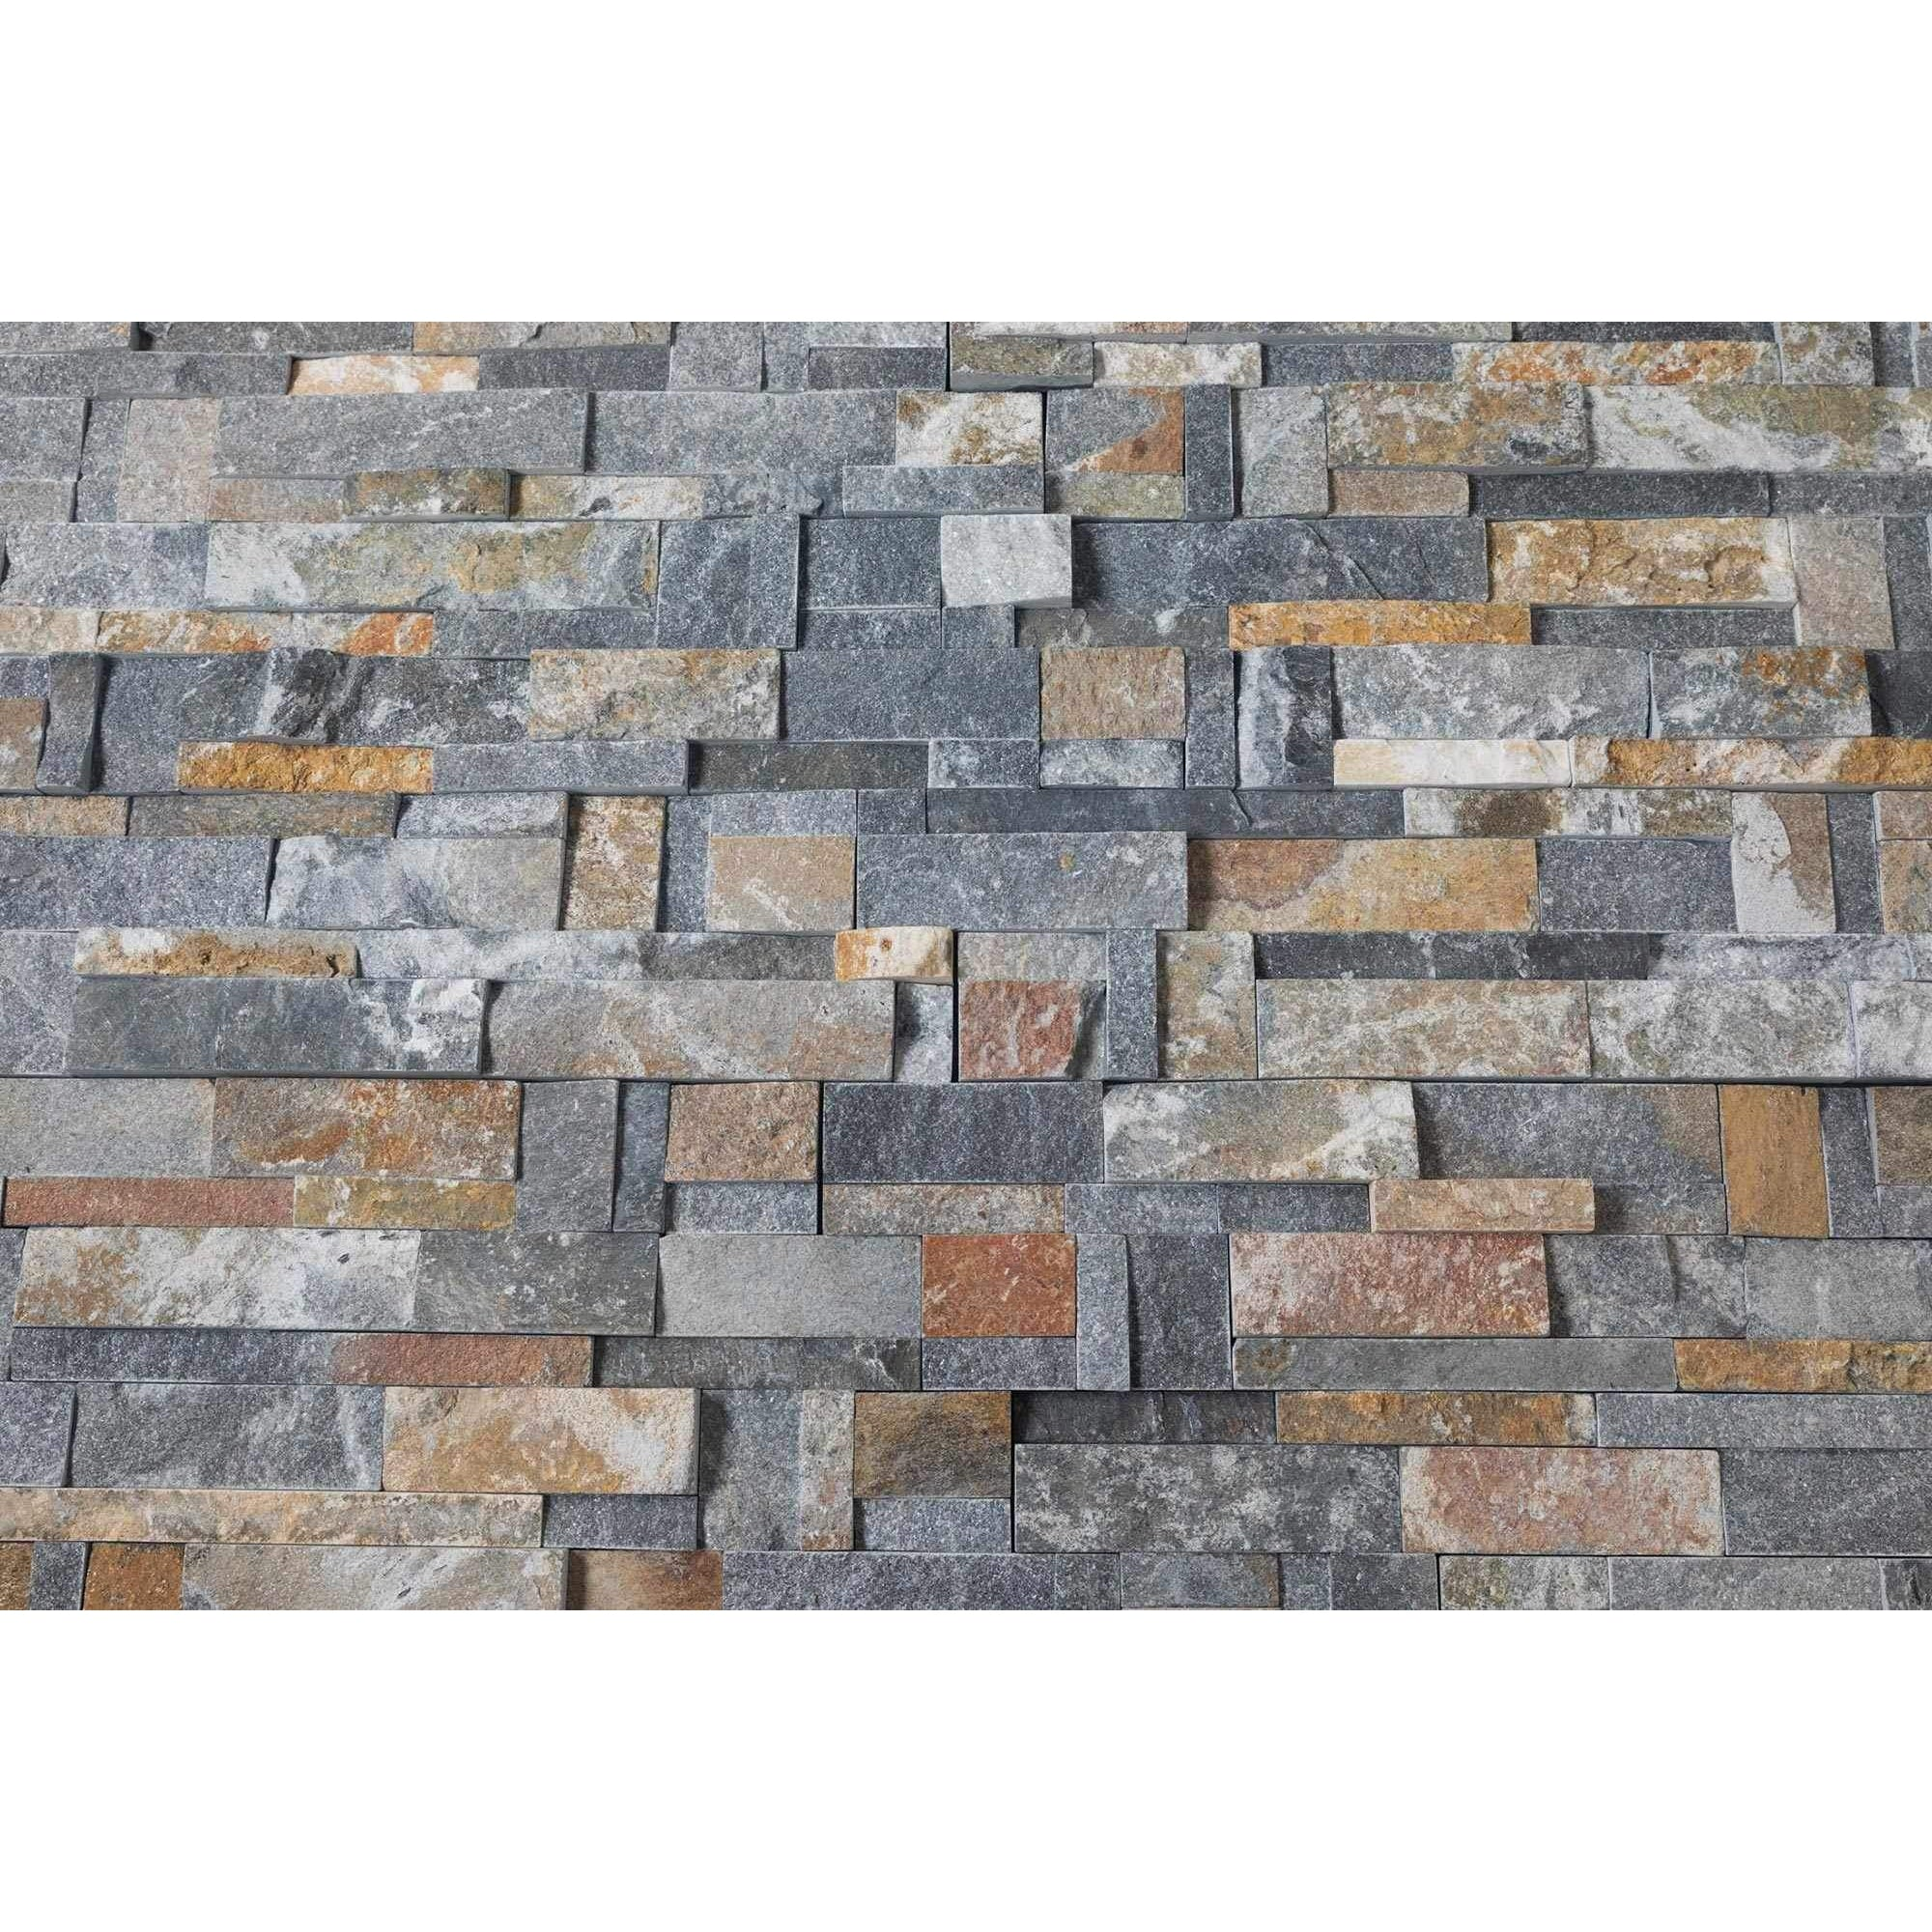 Natural Stacked Stone Feature Wall Cladding Panels - Rusty Black Montage